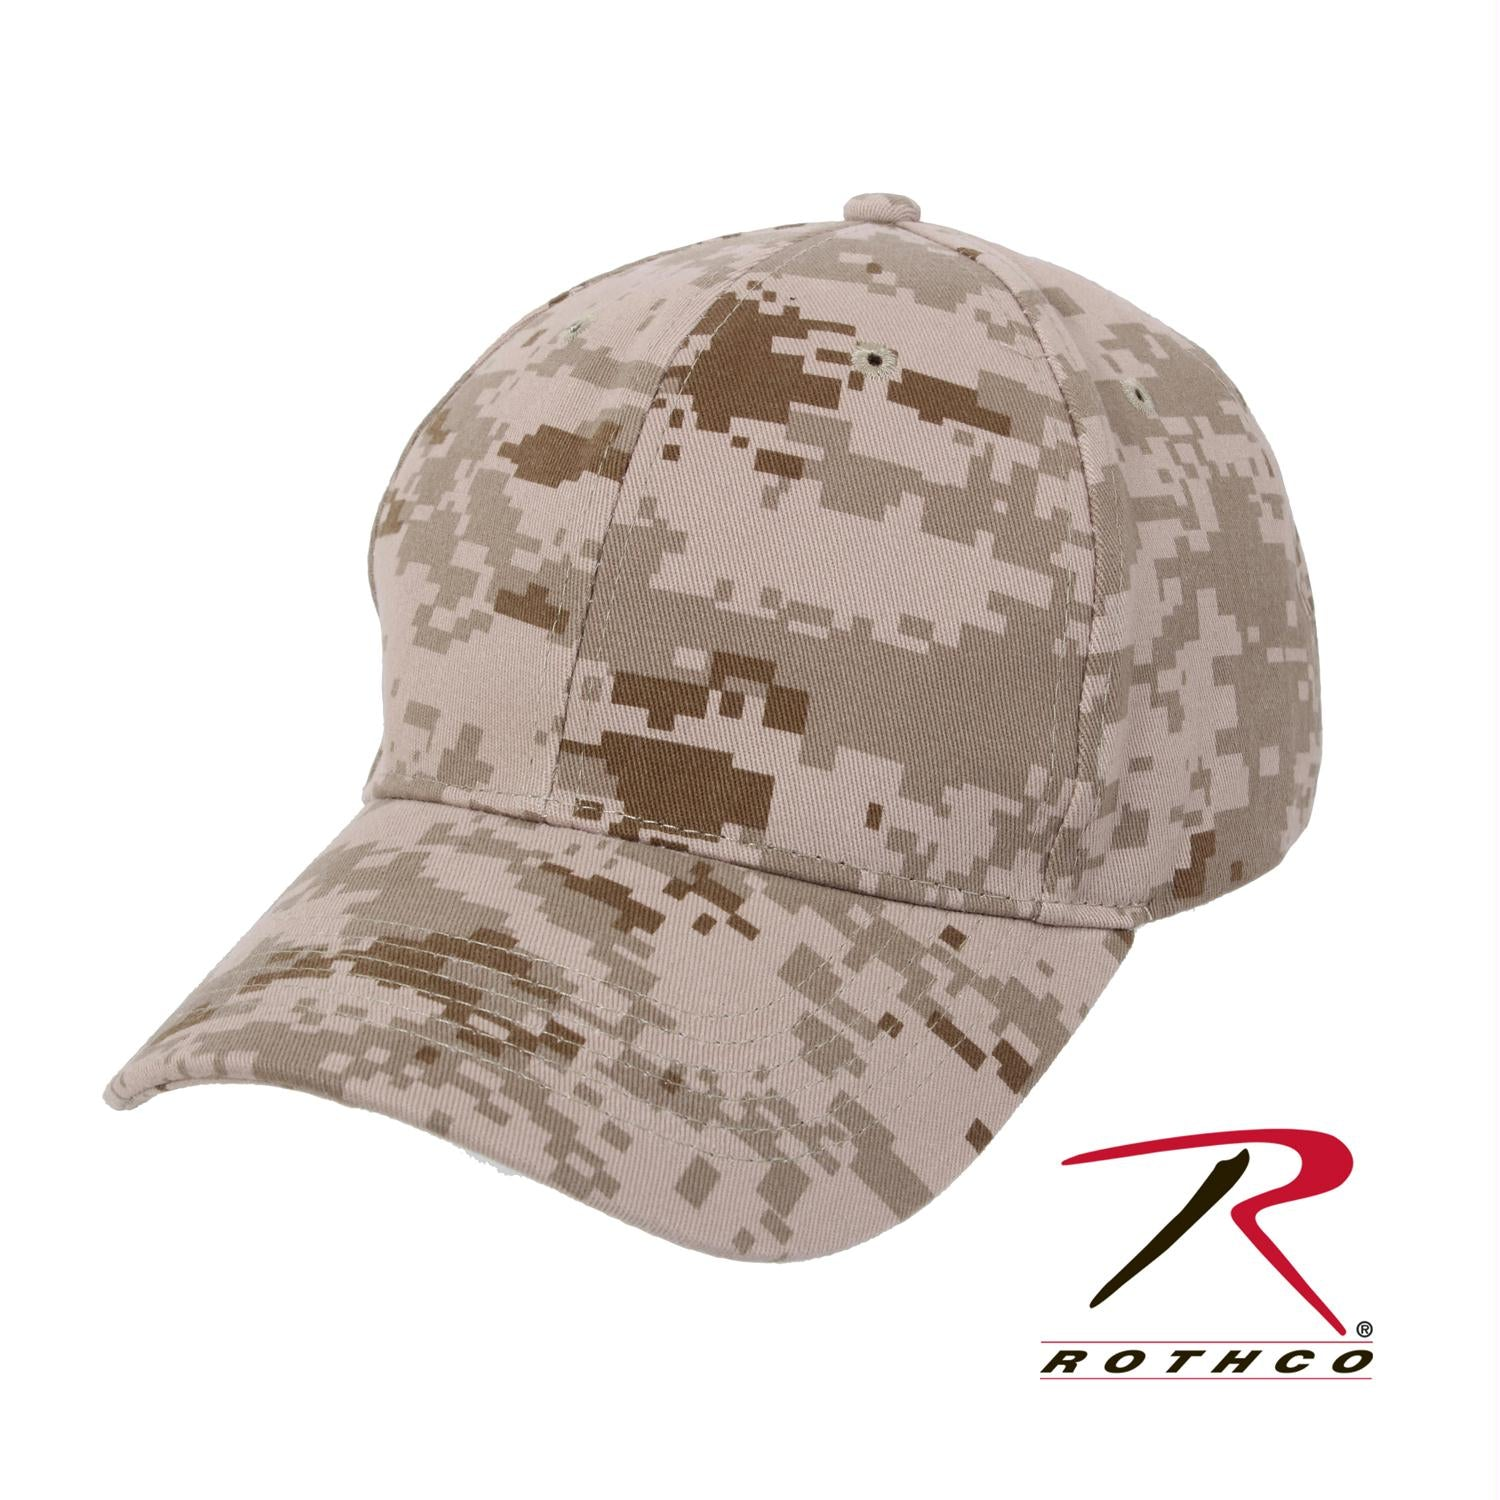 Rothco Supreme Camo Low Profile Cap - Desert Digital Camo / One Size